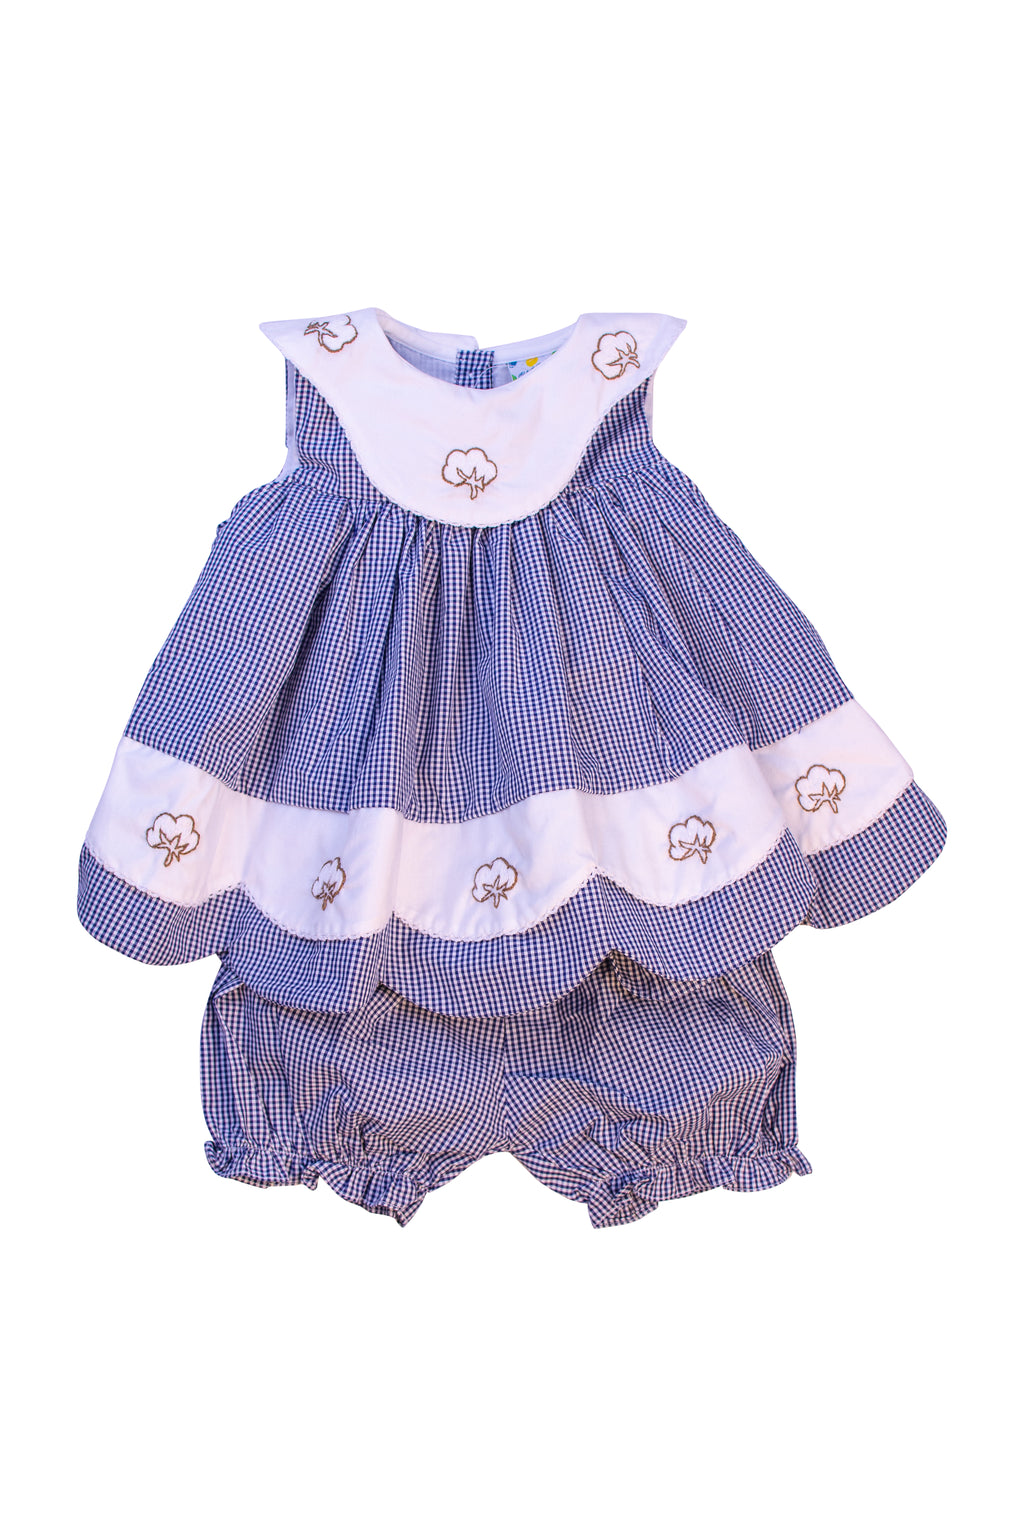 Girls Embroidered Navy Cotton Bloomer Set